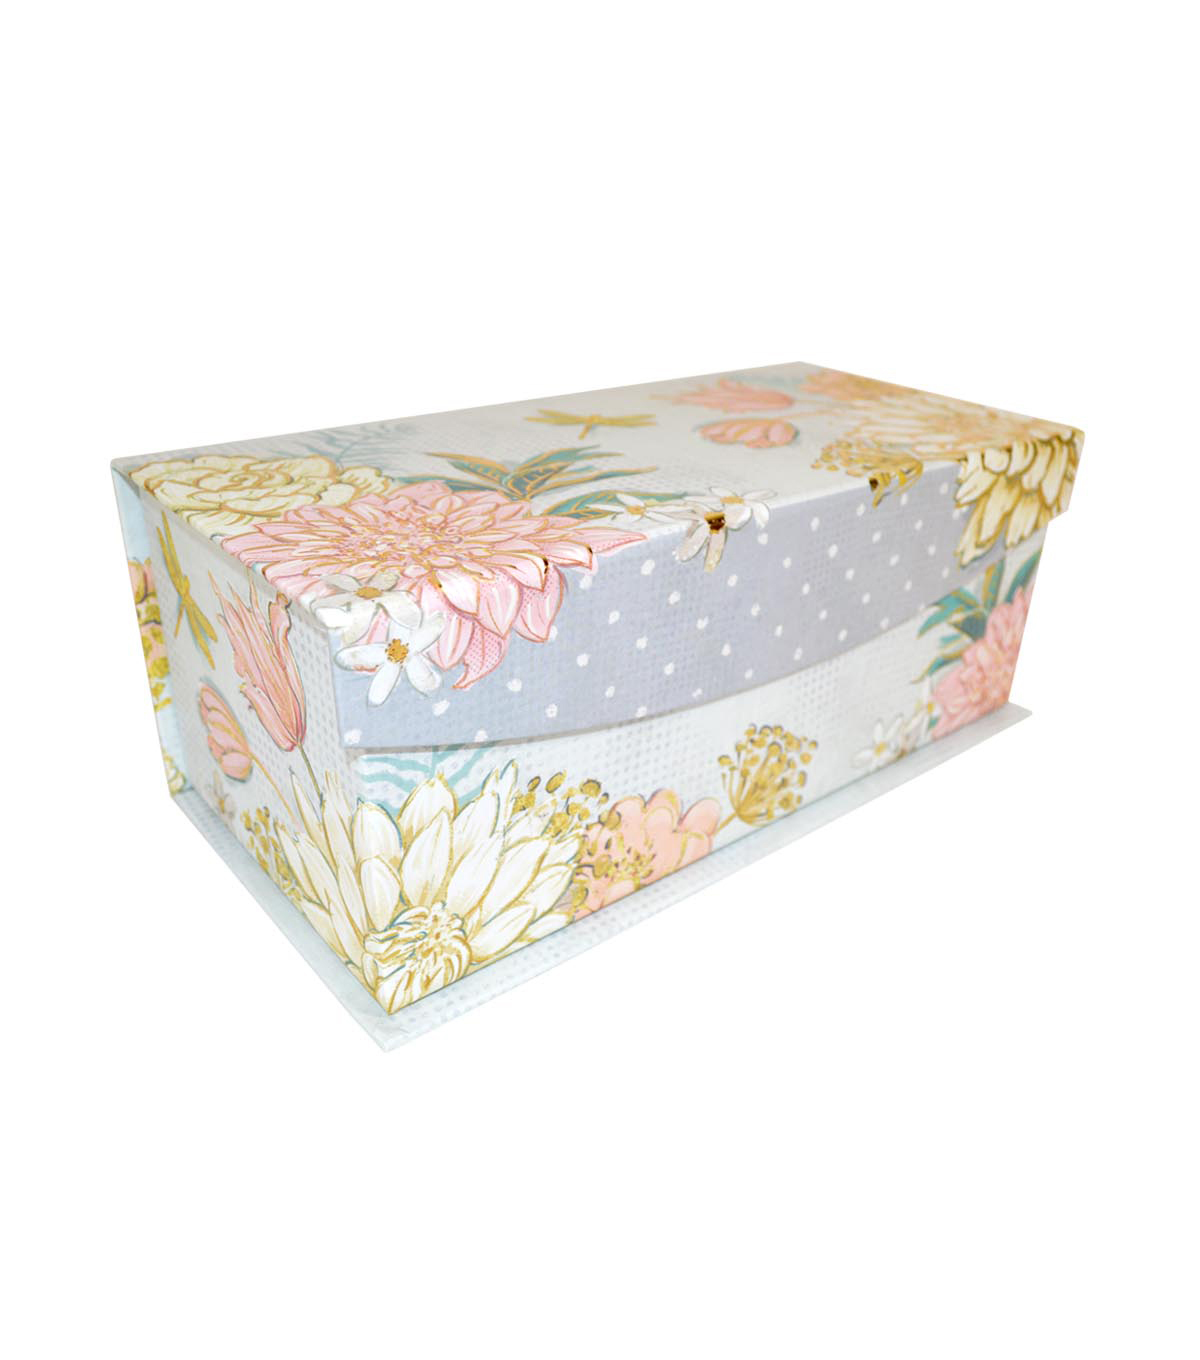 Medium Decorative Flip Top Storage Box-Blush Gold